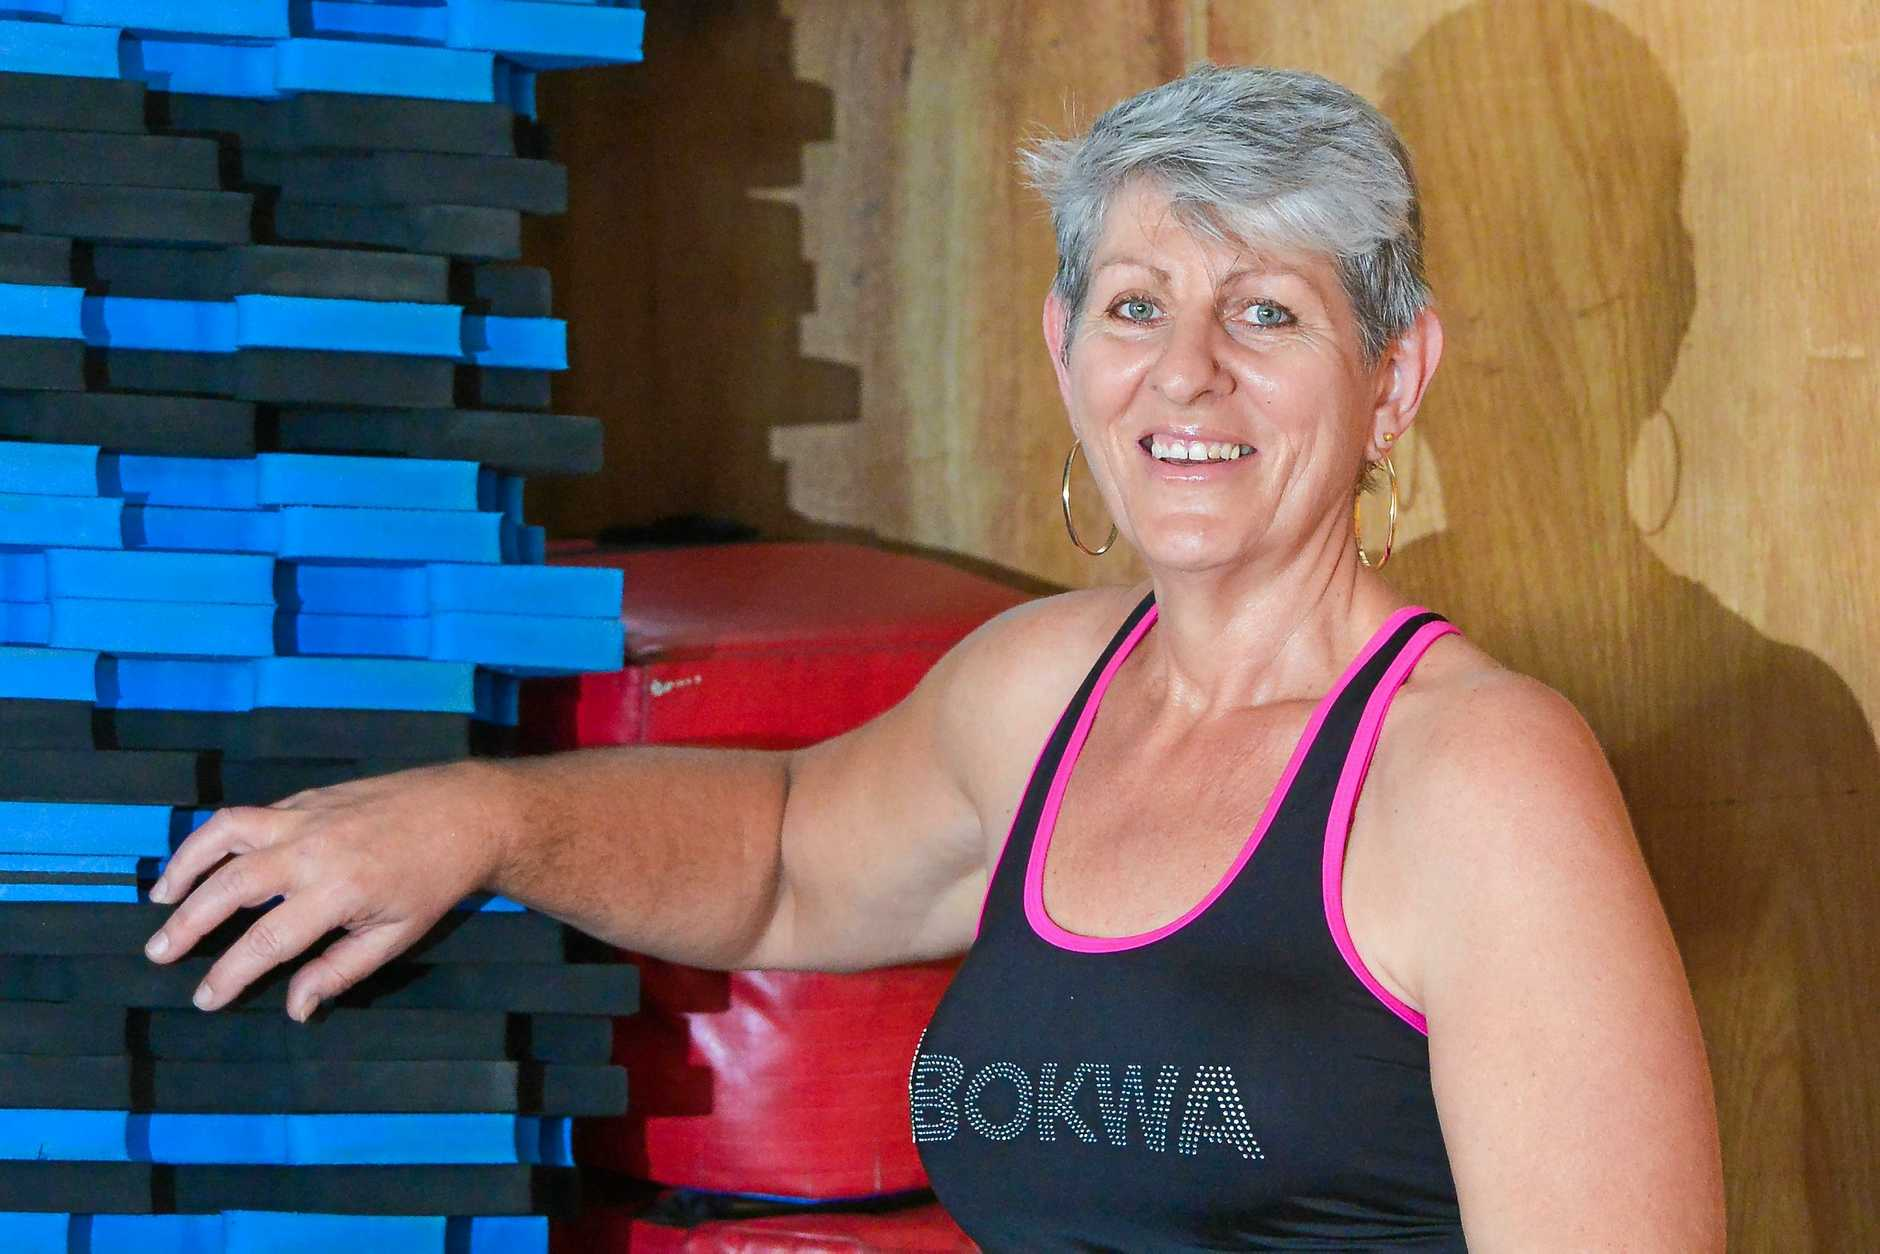 WAKE-UP CALL: Breast cancer survivor Catherine Hayter has lost a significant amount of weight  and now teaches the fitness class she says changed her life, Bokwa.